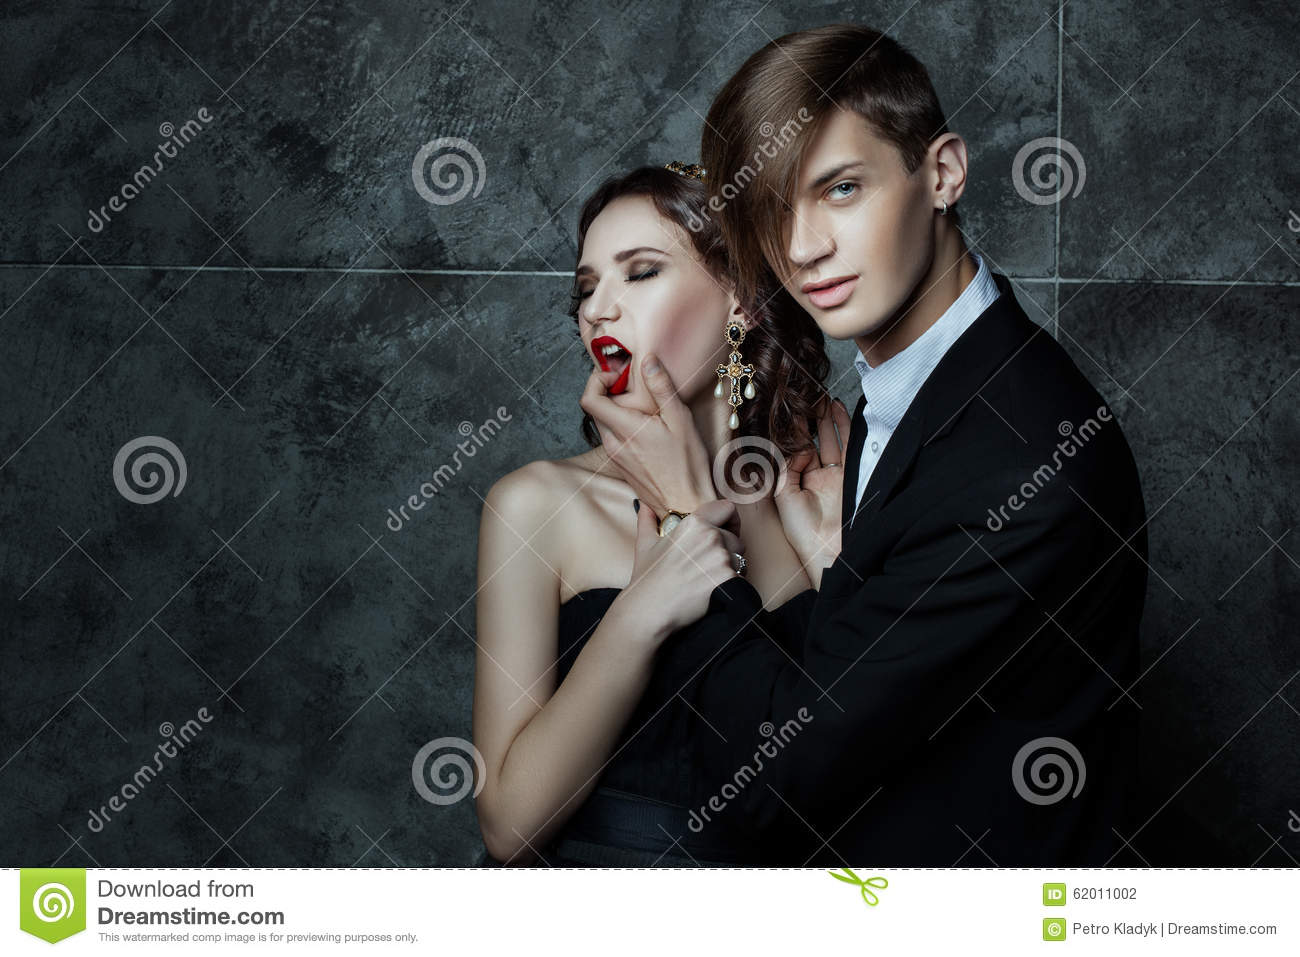 man putting fingers in womans mouth